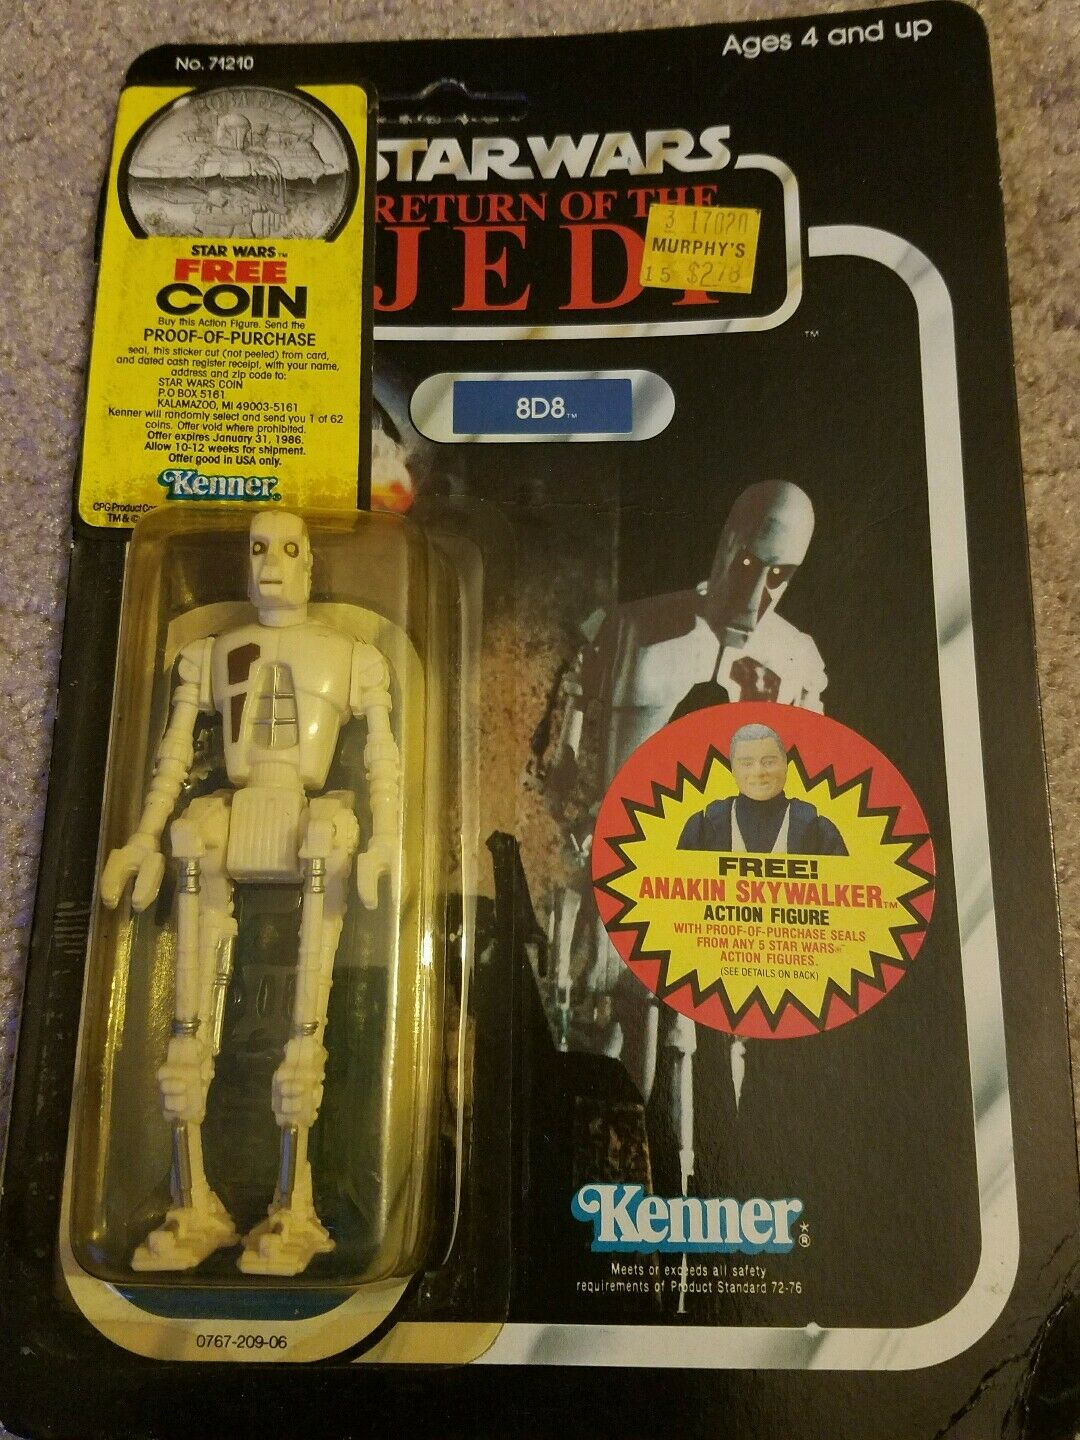 Kenner Star Wars 8D8 vintage action figurine